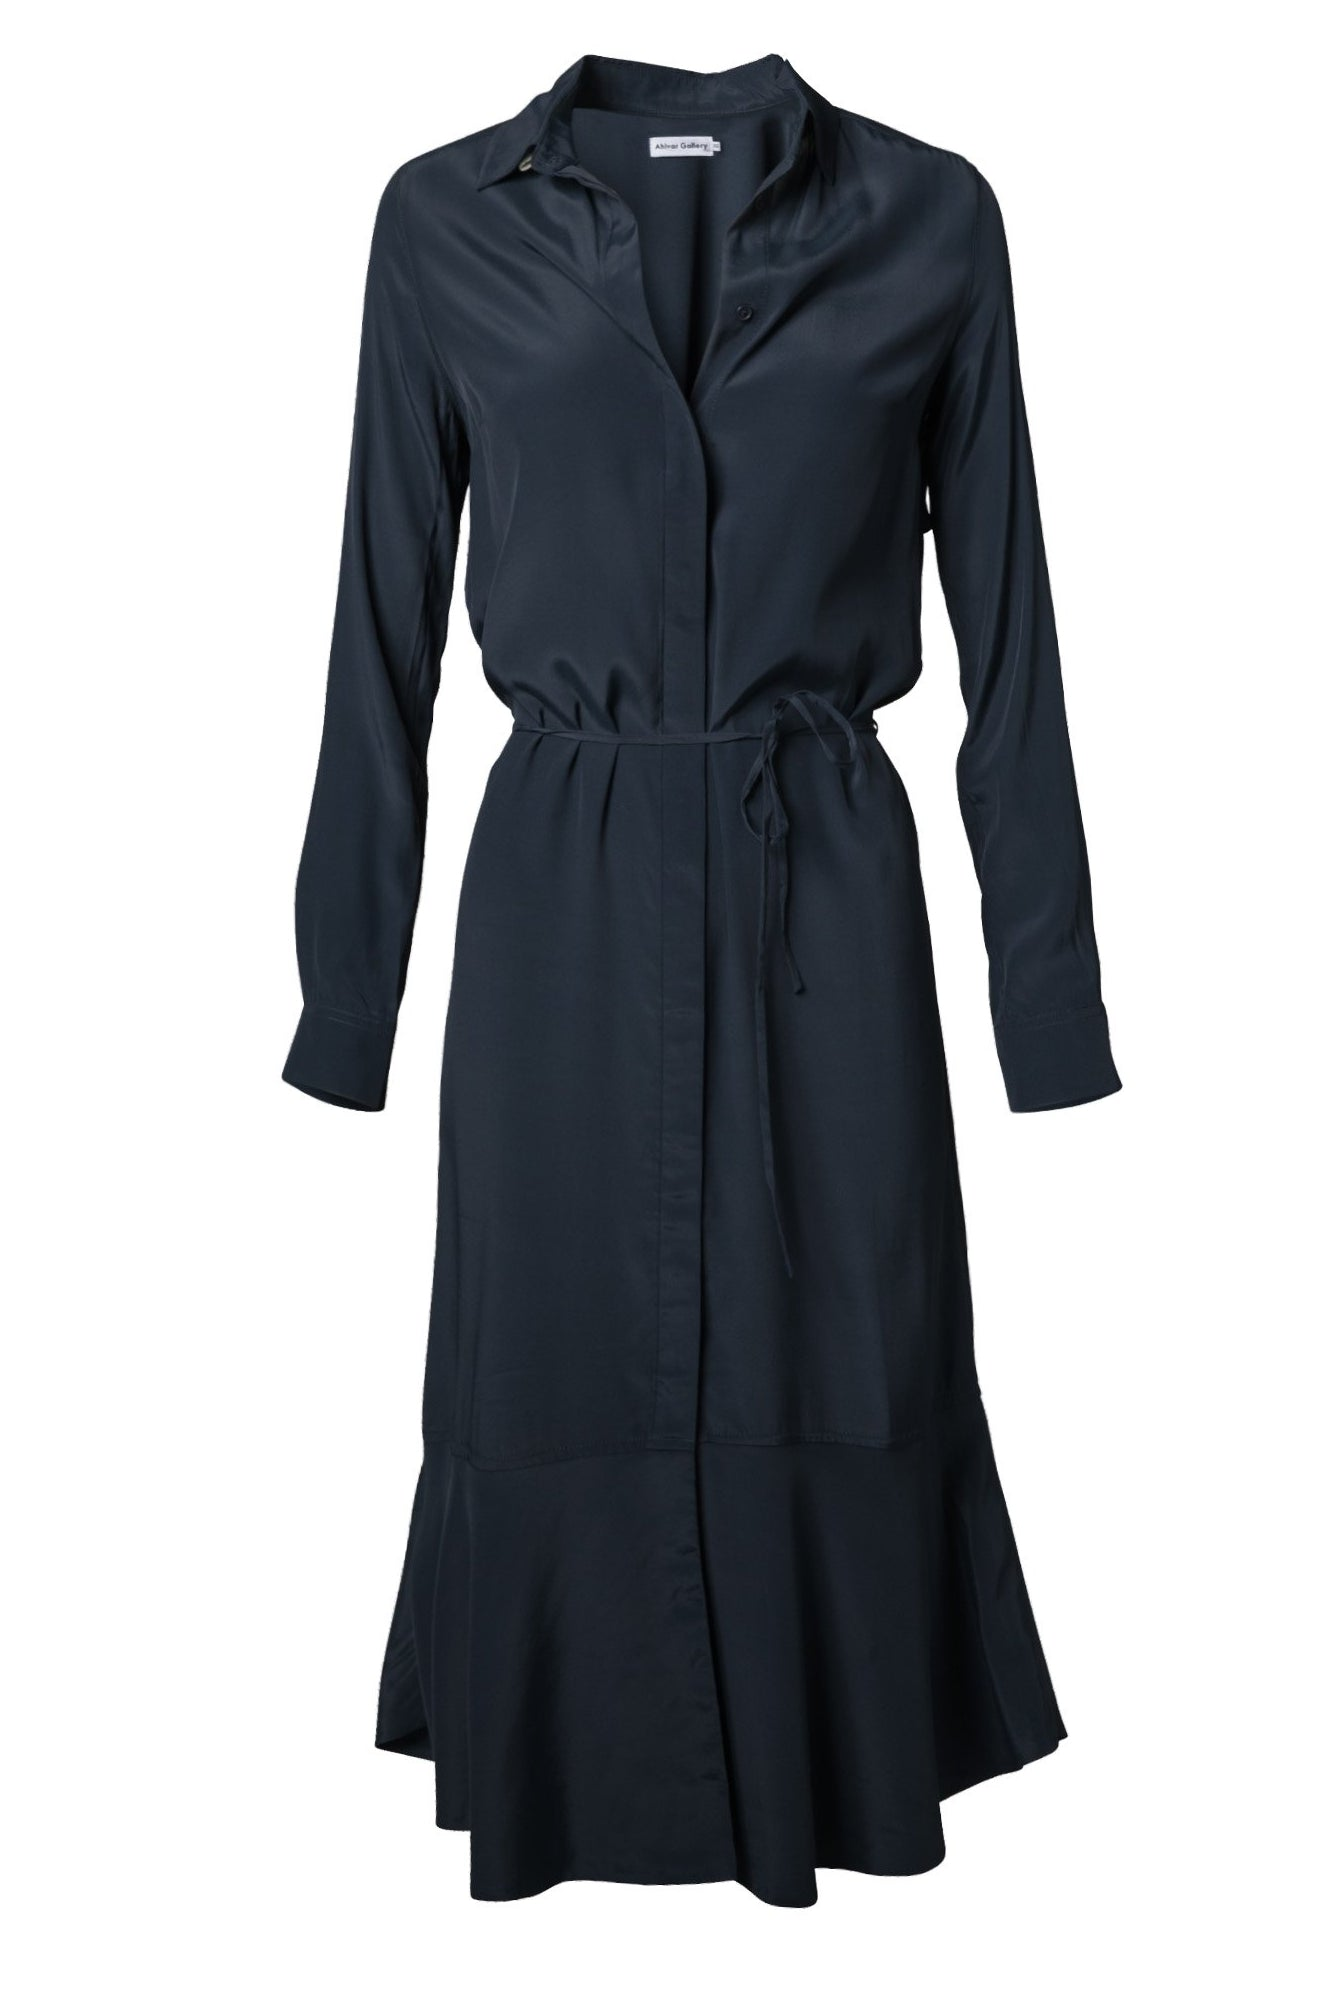 Ahlvar Gallery Li Dress in Blue Grey with long sleeves and a loose hanging back yoke.